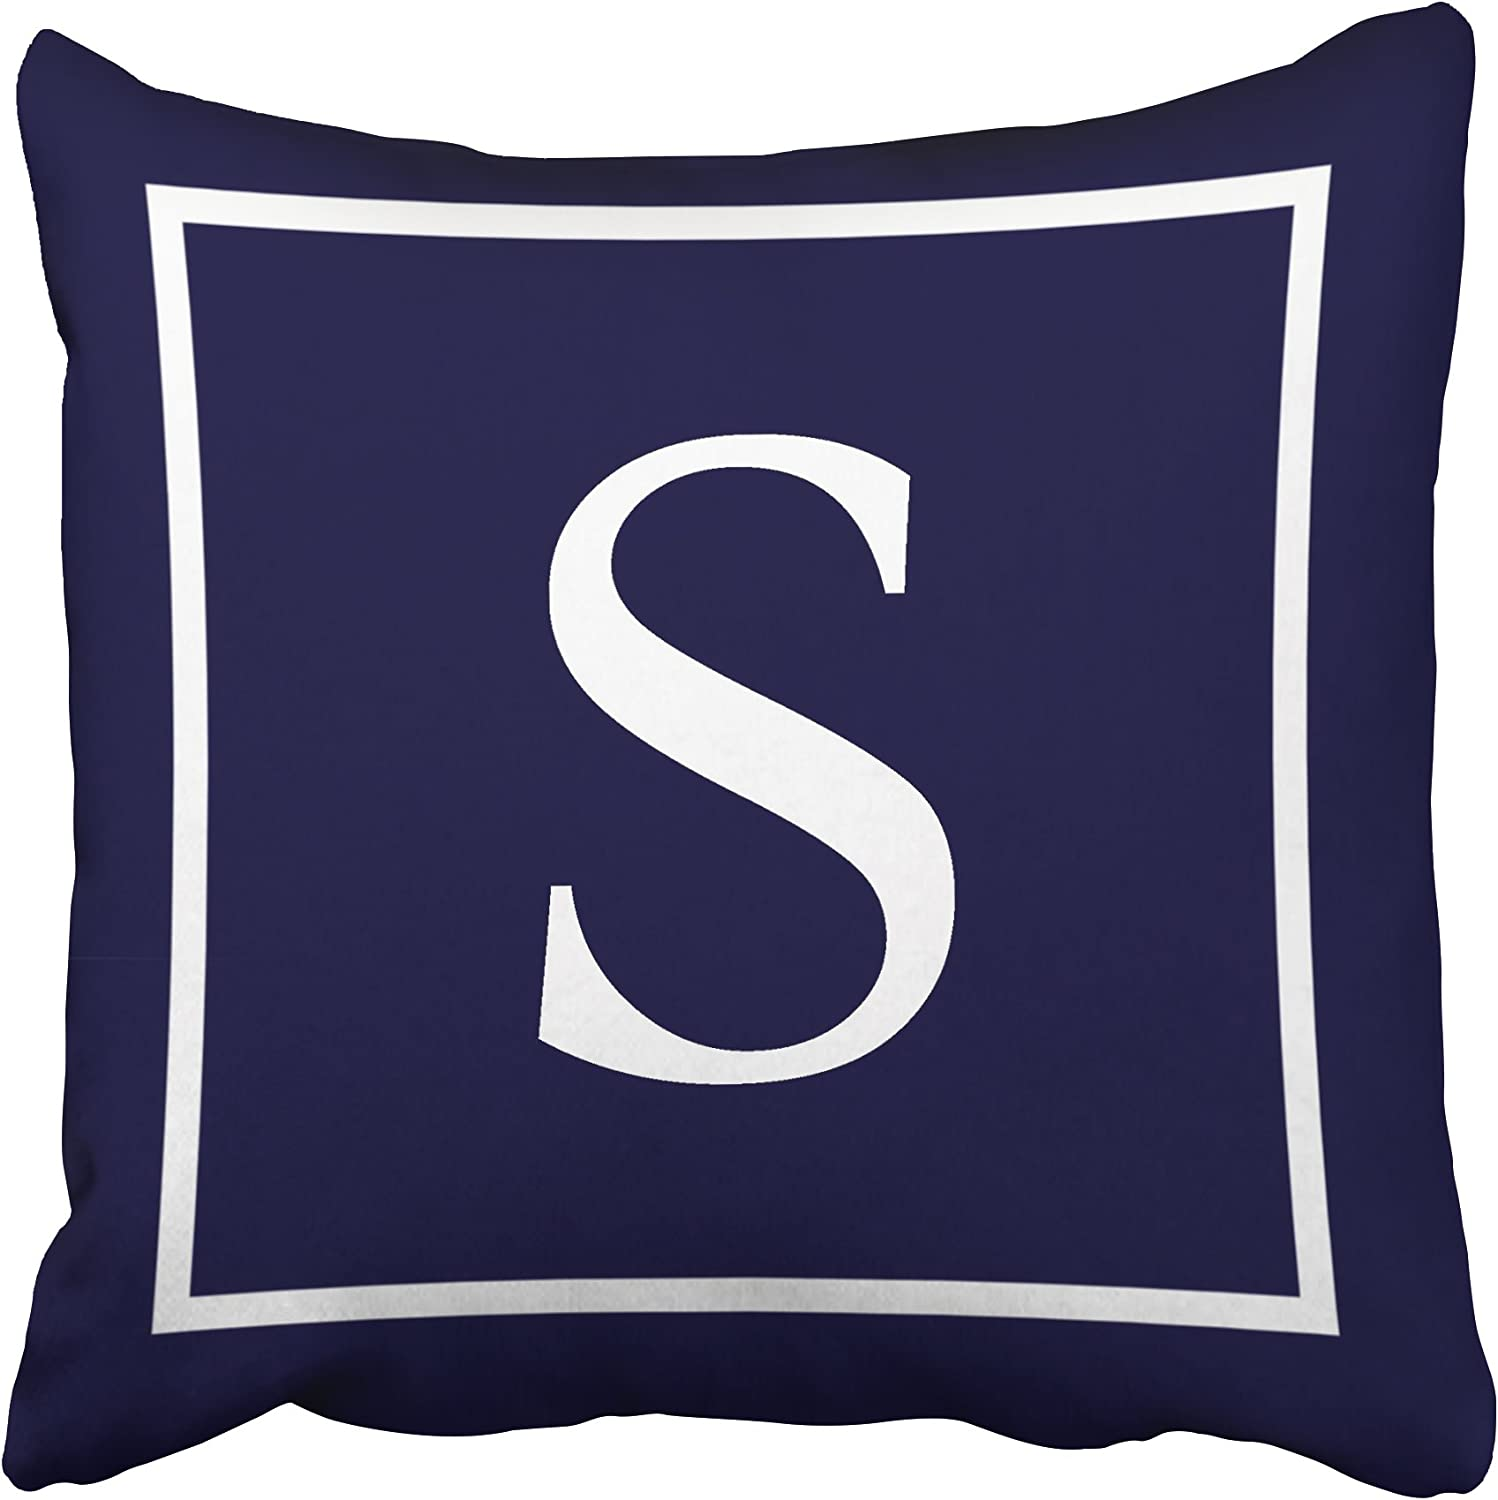 Amazon Com Tarolo Decorative Customize Monogram On Navy Blue Pillow Personalized Monogram S Cotton Throw Pillow Case Decor Cushion Covers Size 16x16 Inches 40x40cm One Sided Home Kitchen